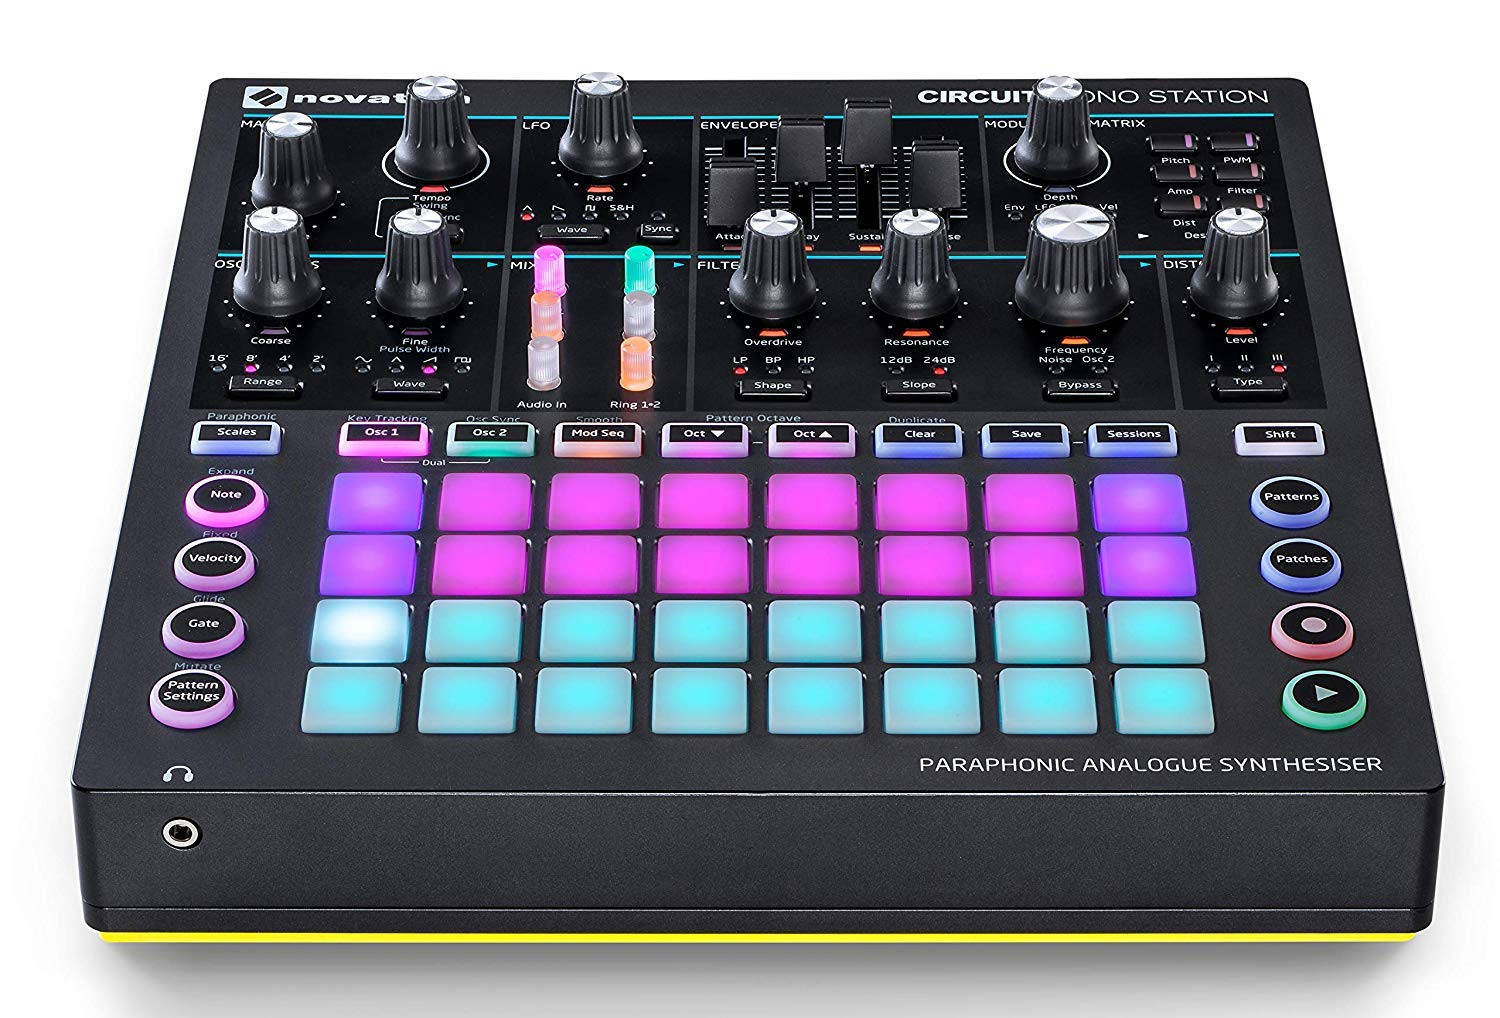 Novation Circuit Mono Station Paraphonic Analog Synthesizer with Microfiber and 1 Year Everything Music Extended Warranty by Novation (Image #2)